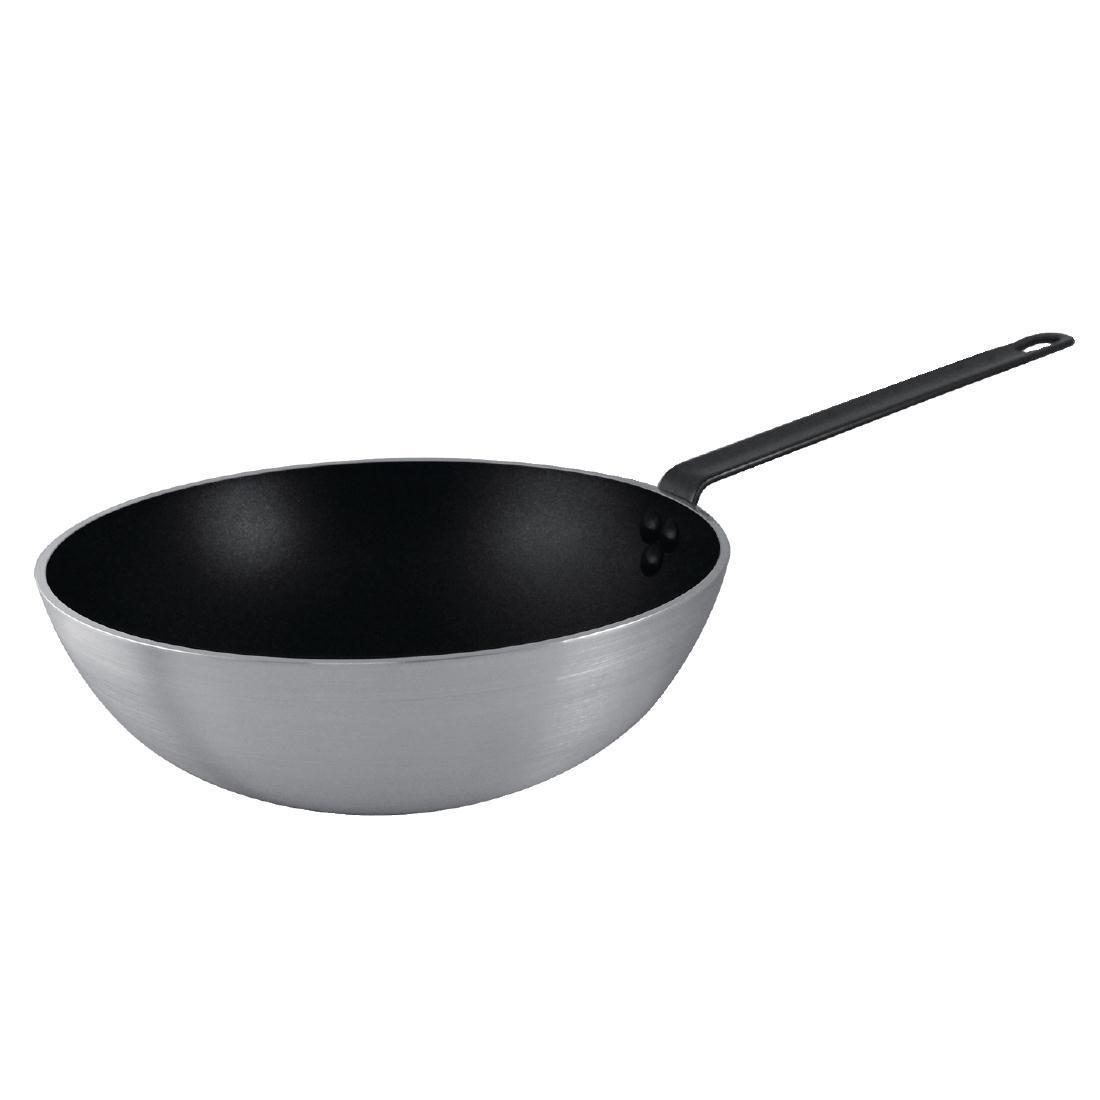 Vogue Non Stick Teflon Platinum Wok 300mm - Each - CE165